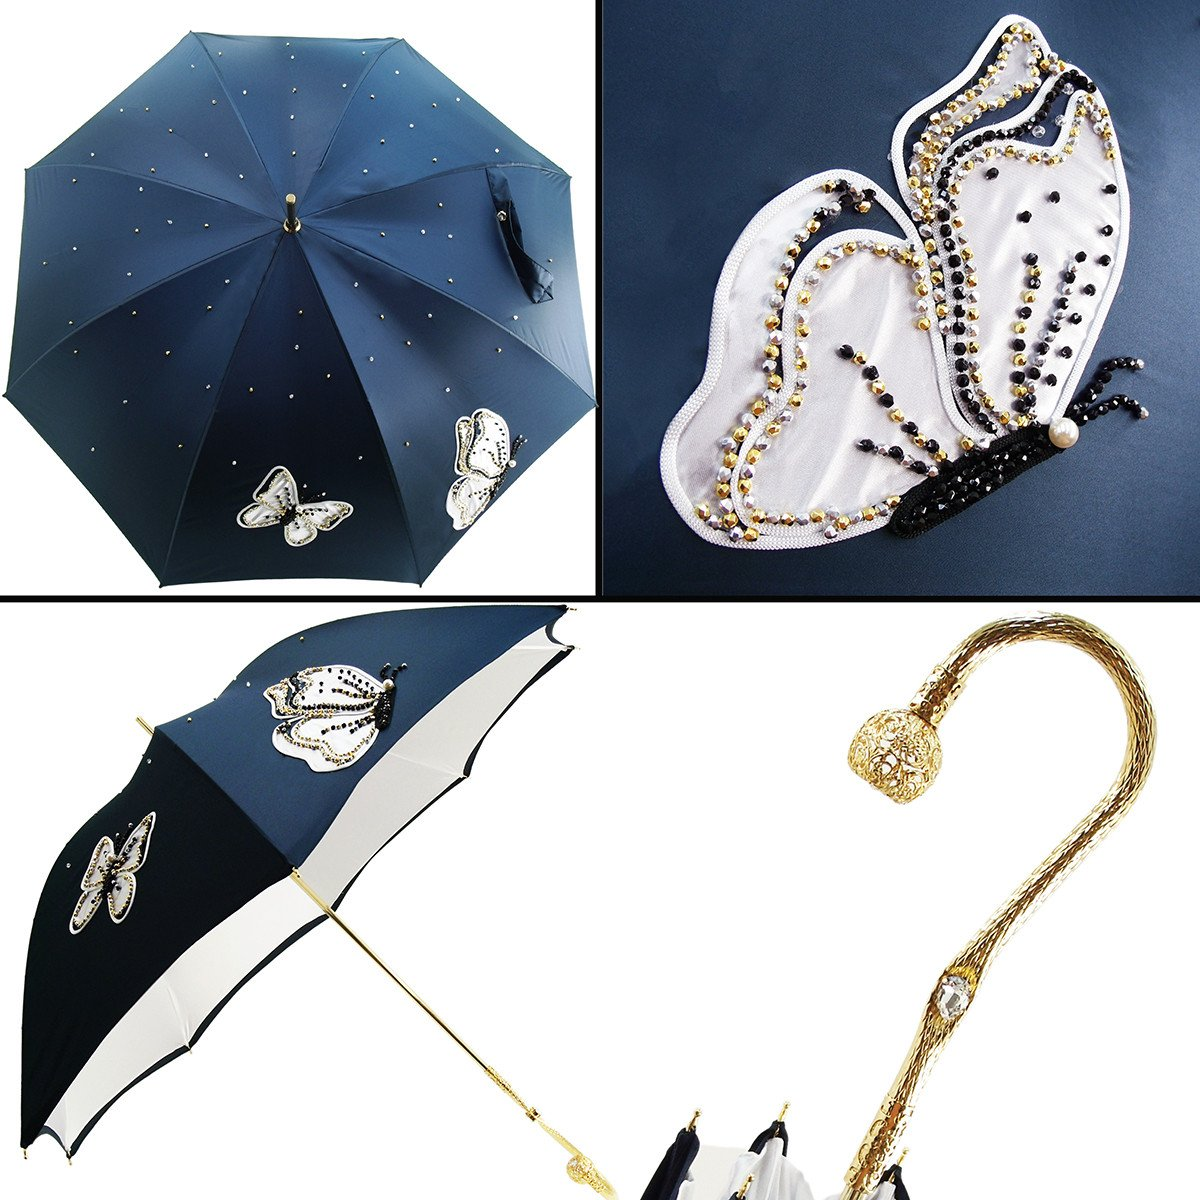 LUXURY EMBROIDERED DOUBLE COTH UMBRELLAS